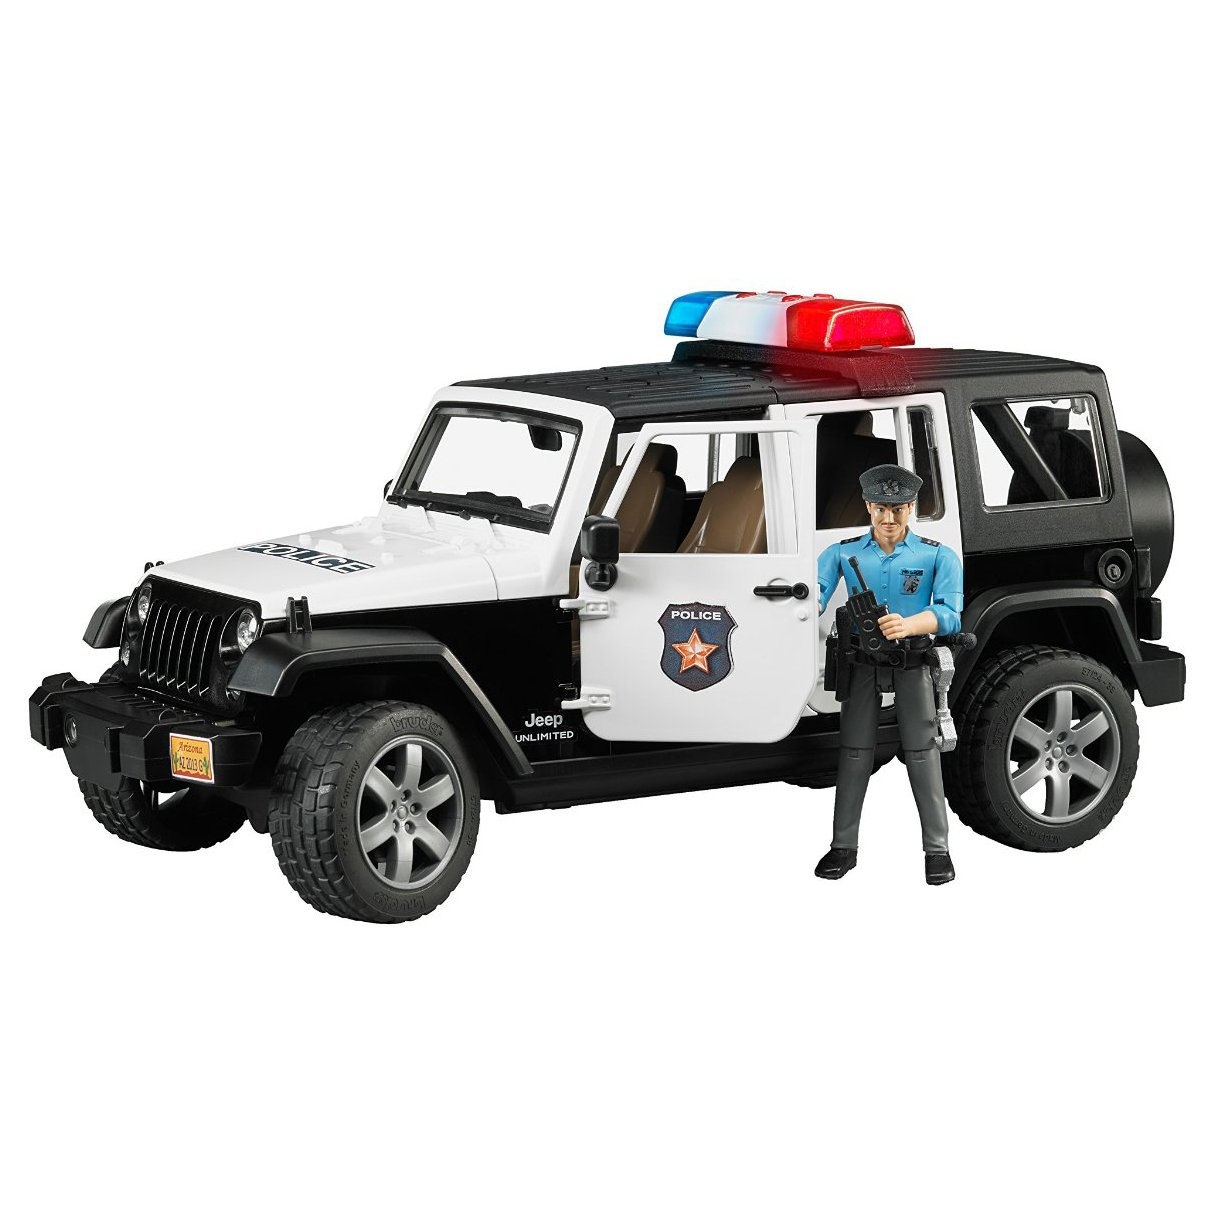 Bruder Toys Jeep Rubicon Police Car with Policeman and Accessories | 02526